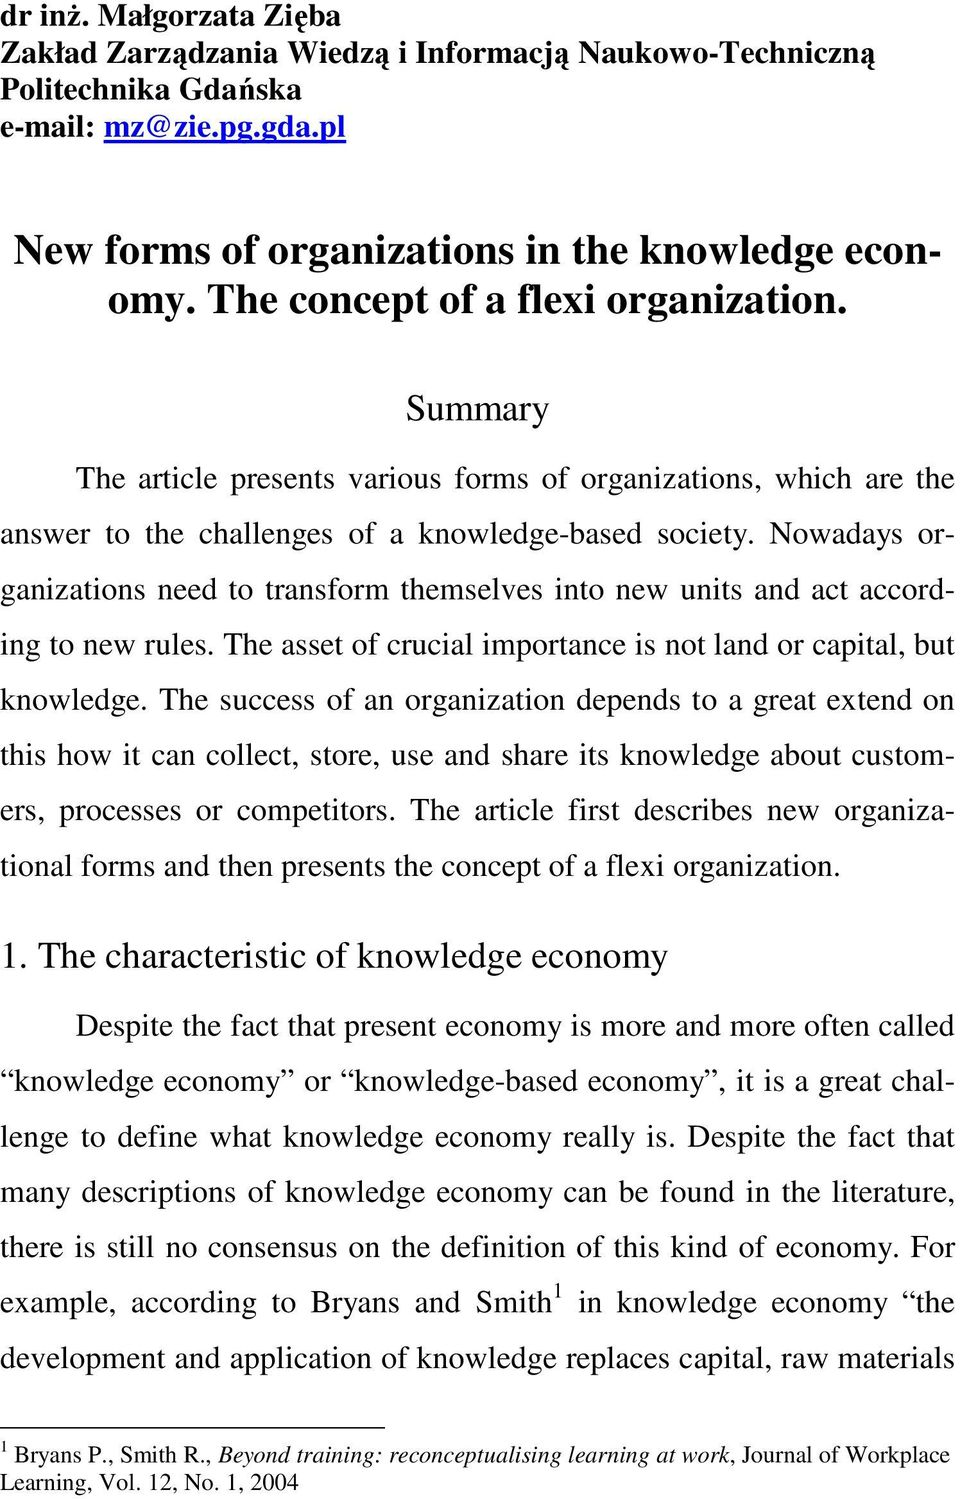 Nowadays organizations need to transform themselves into new units and act according to new rules. The asset of crucial importance is not land or capital, but knowledge.